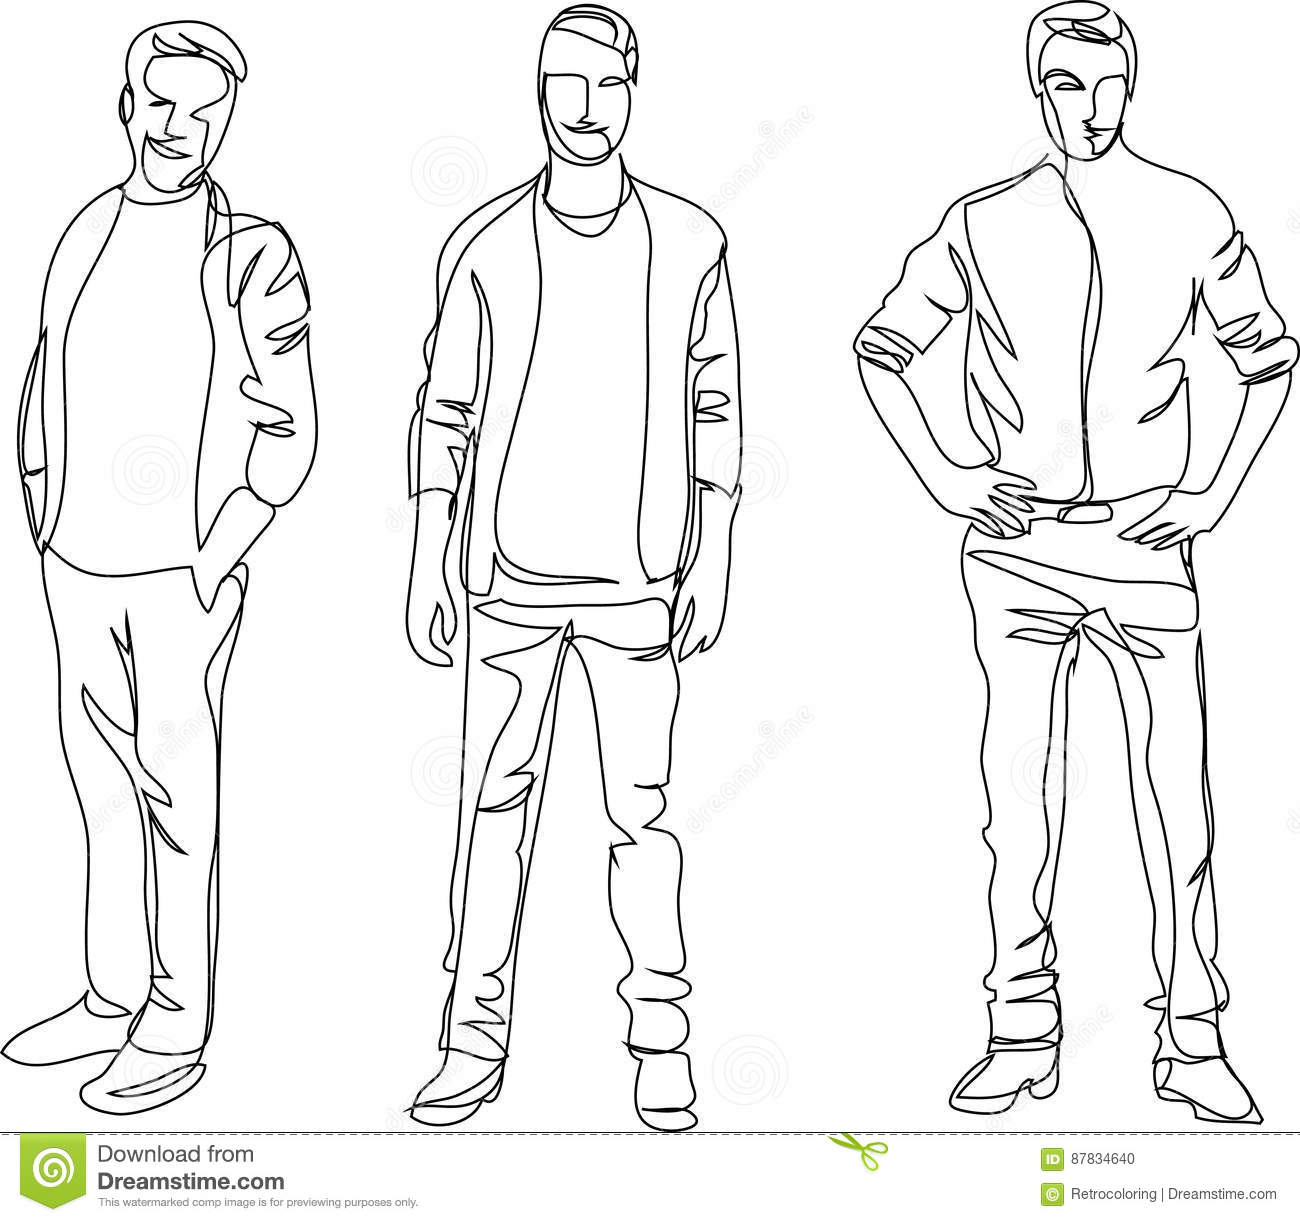 Line Drawing Man : Continuous line drawing standing men stock vector